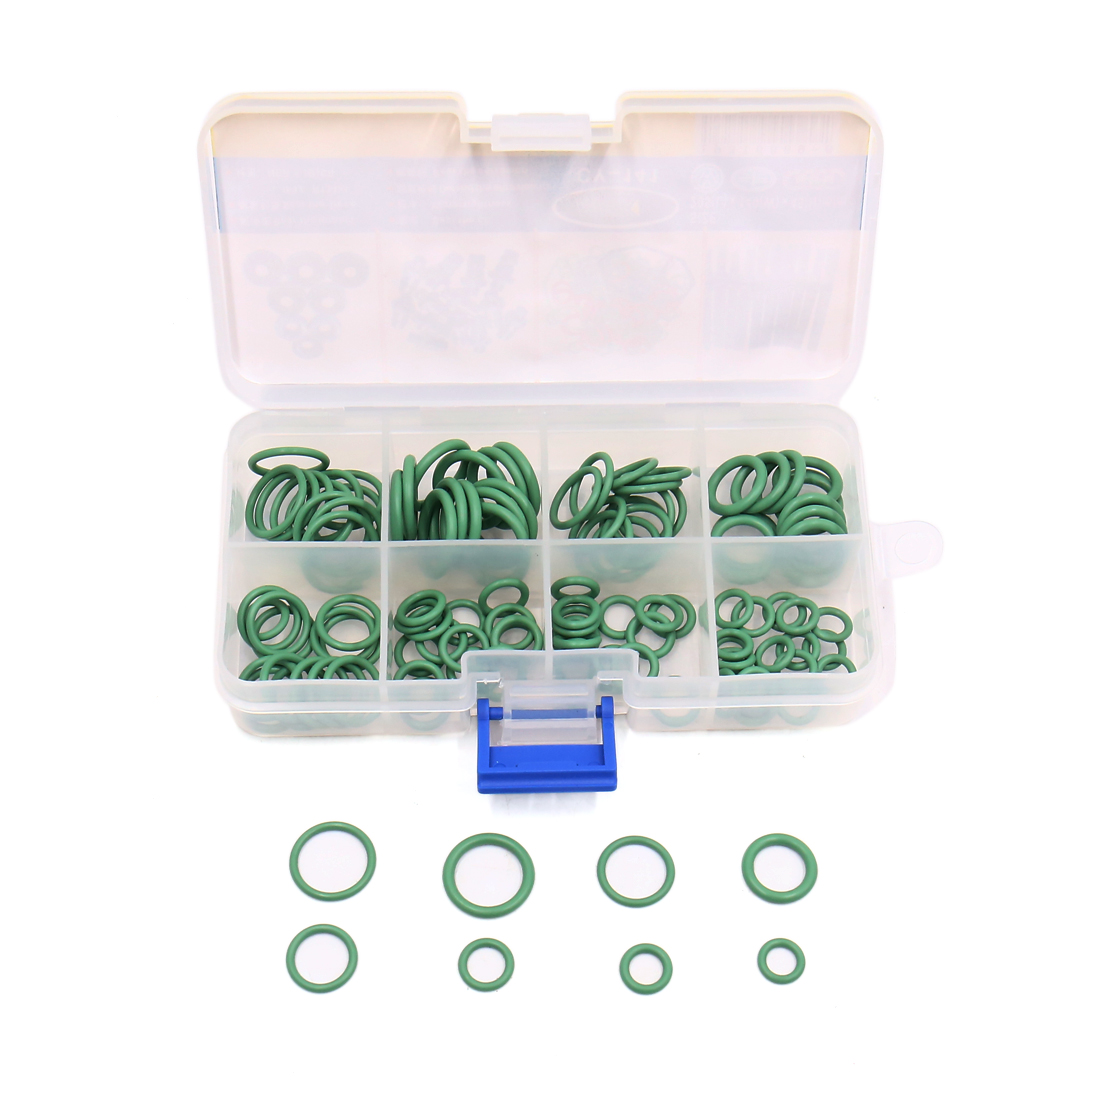 111Pcs Green O Ring Assortment Air Conditioner Rubber Oil Seal Gasket Set Kit